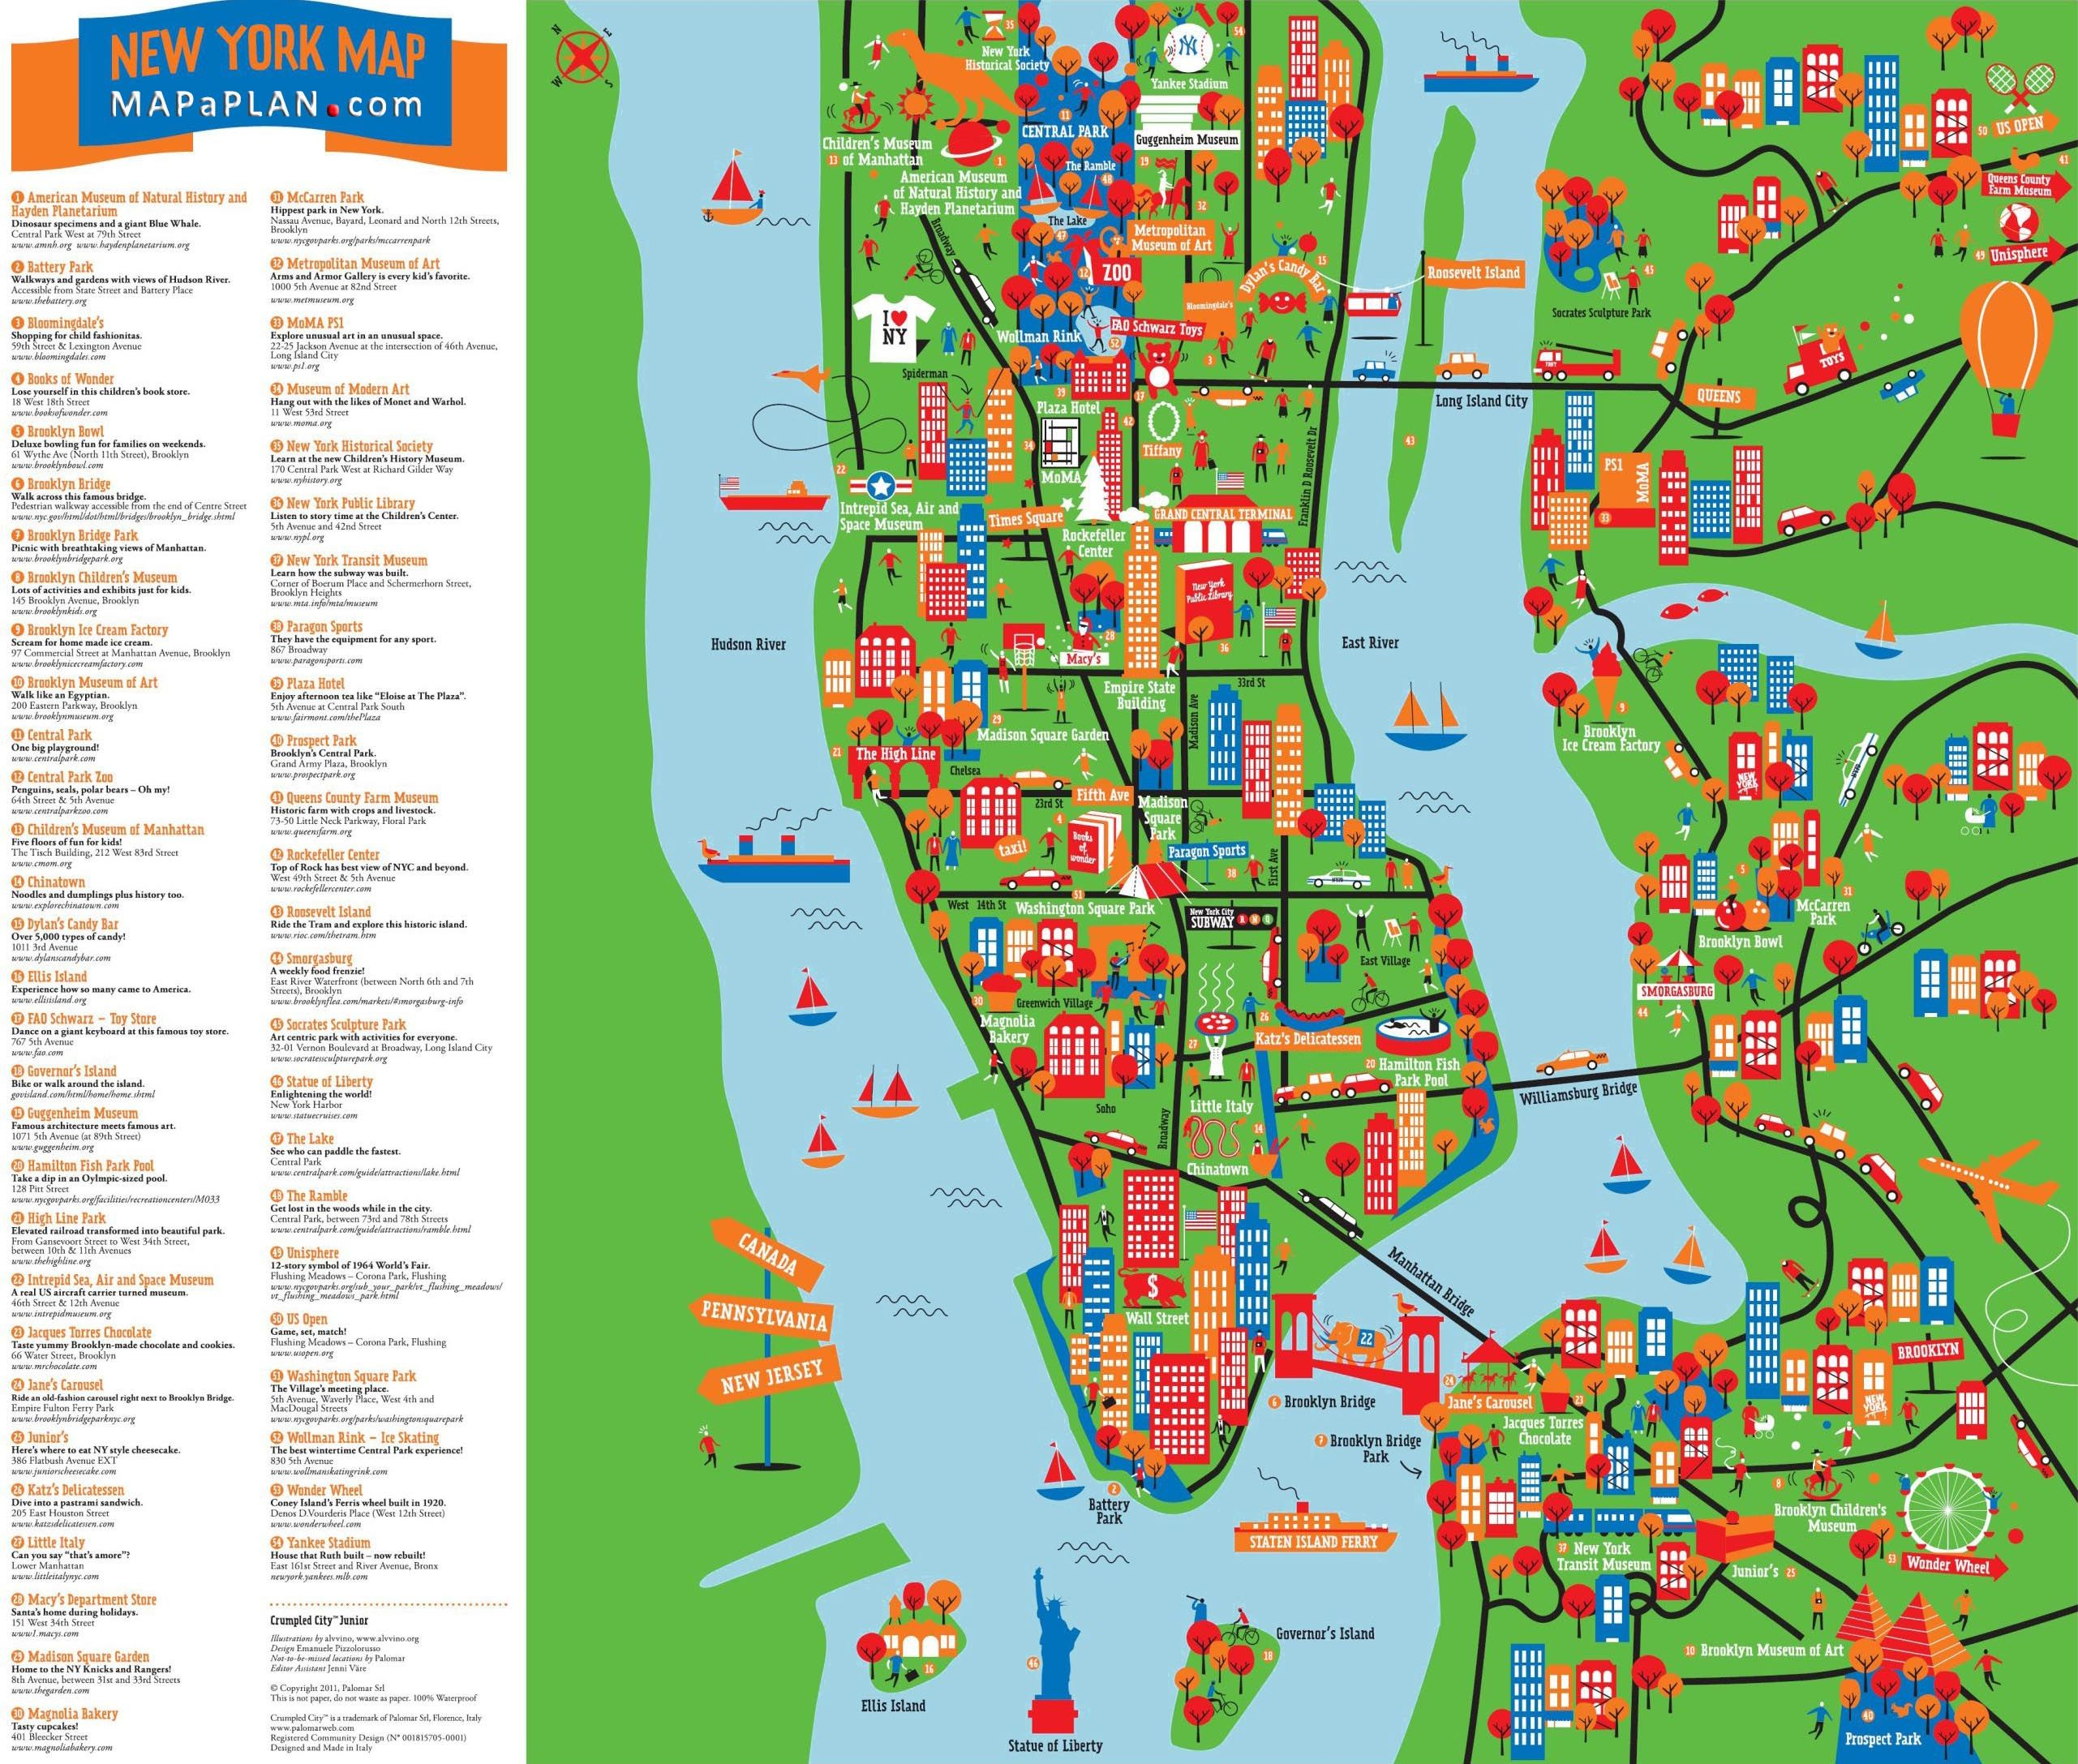 Map Of New York City Tourist Sites.Great Things To Do With Kids Children Interactive Colorful New York